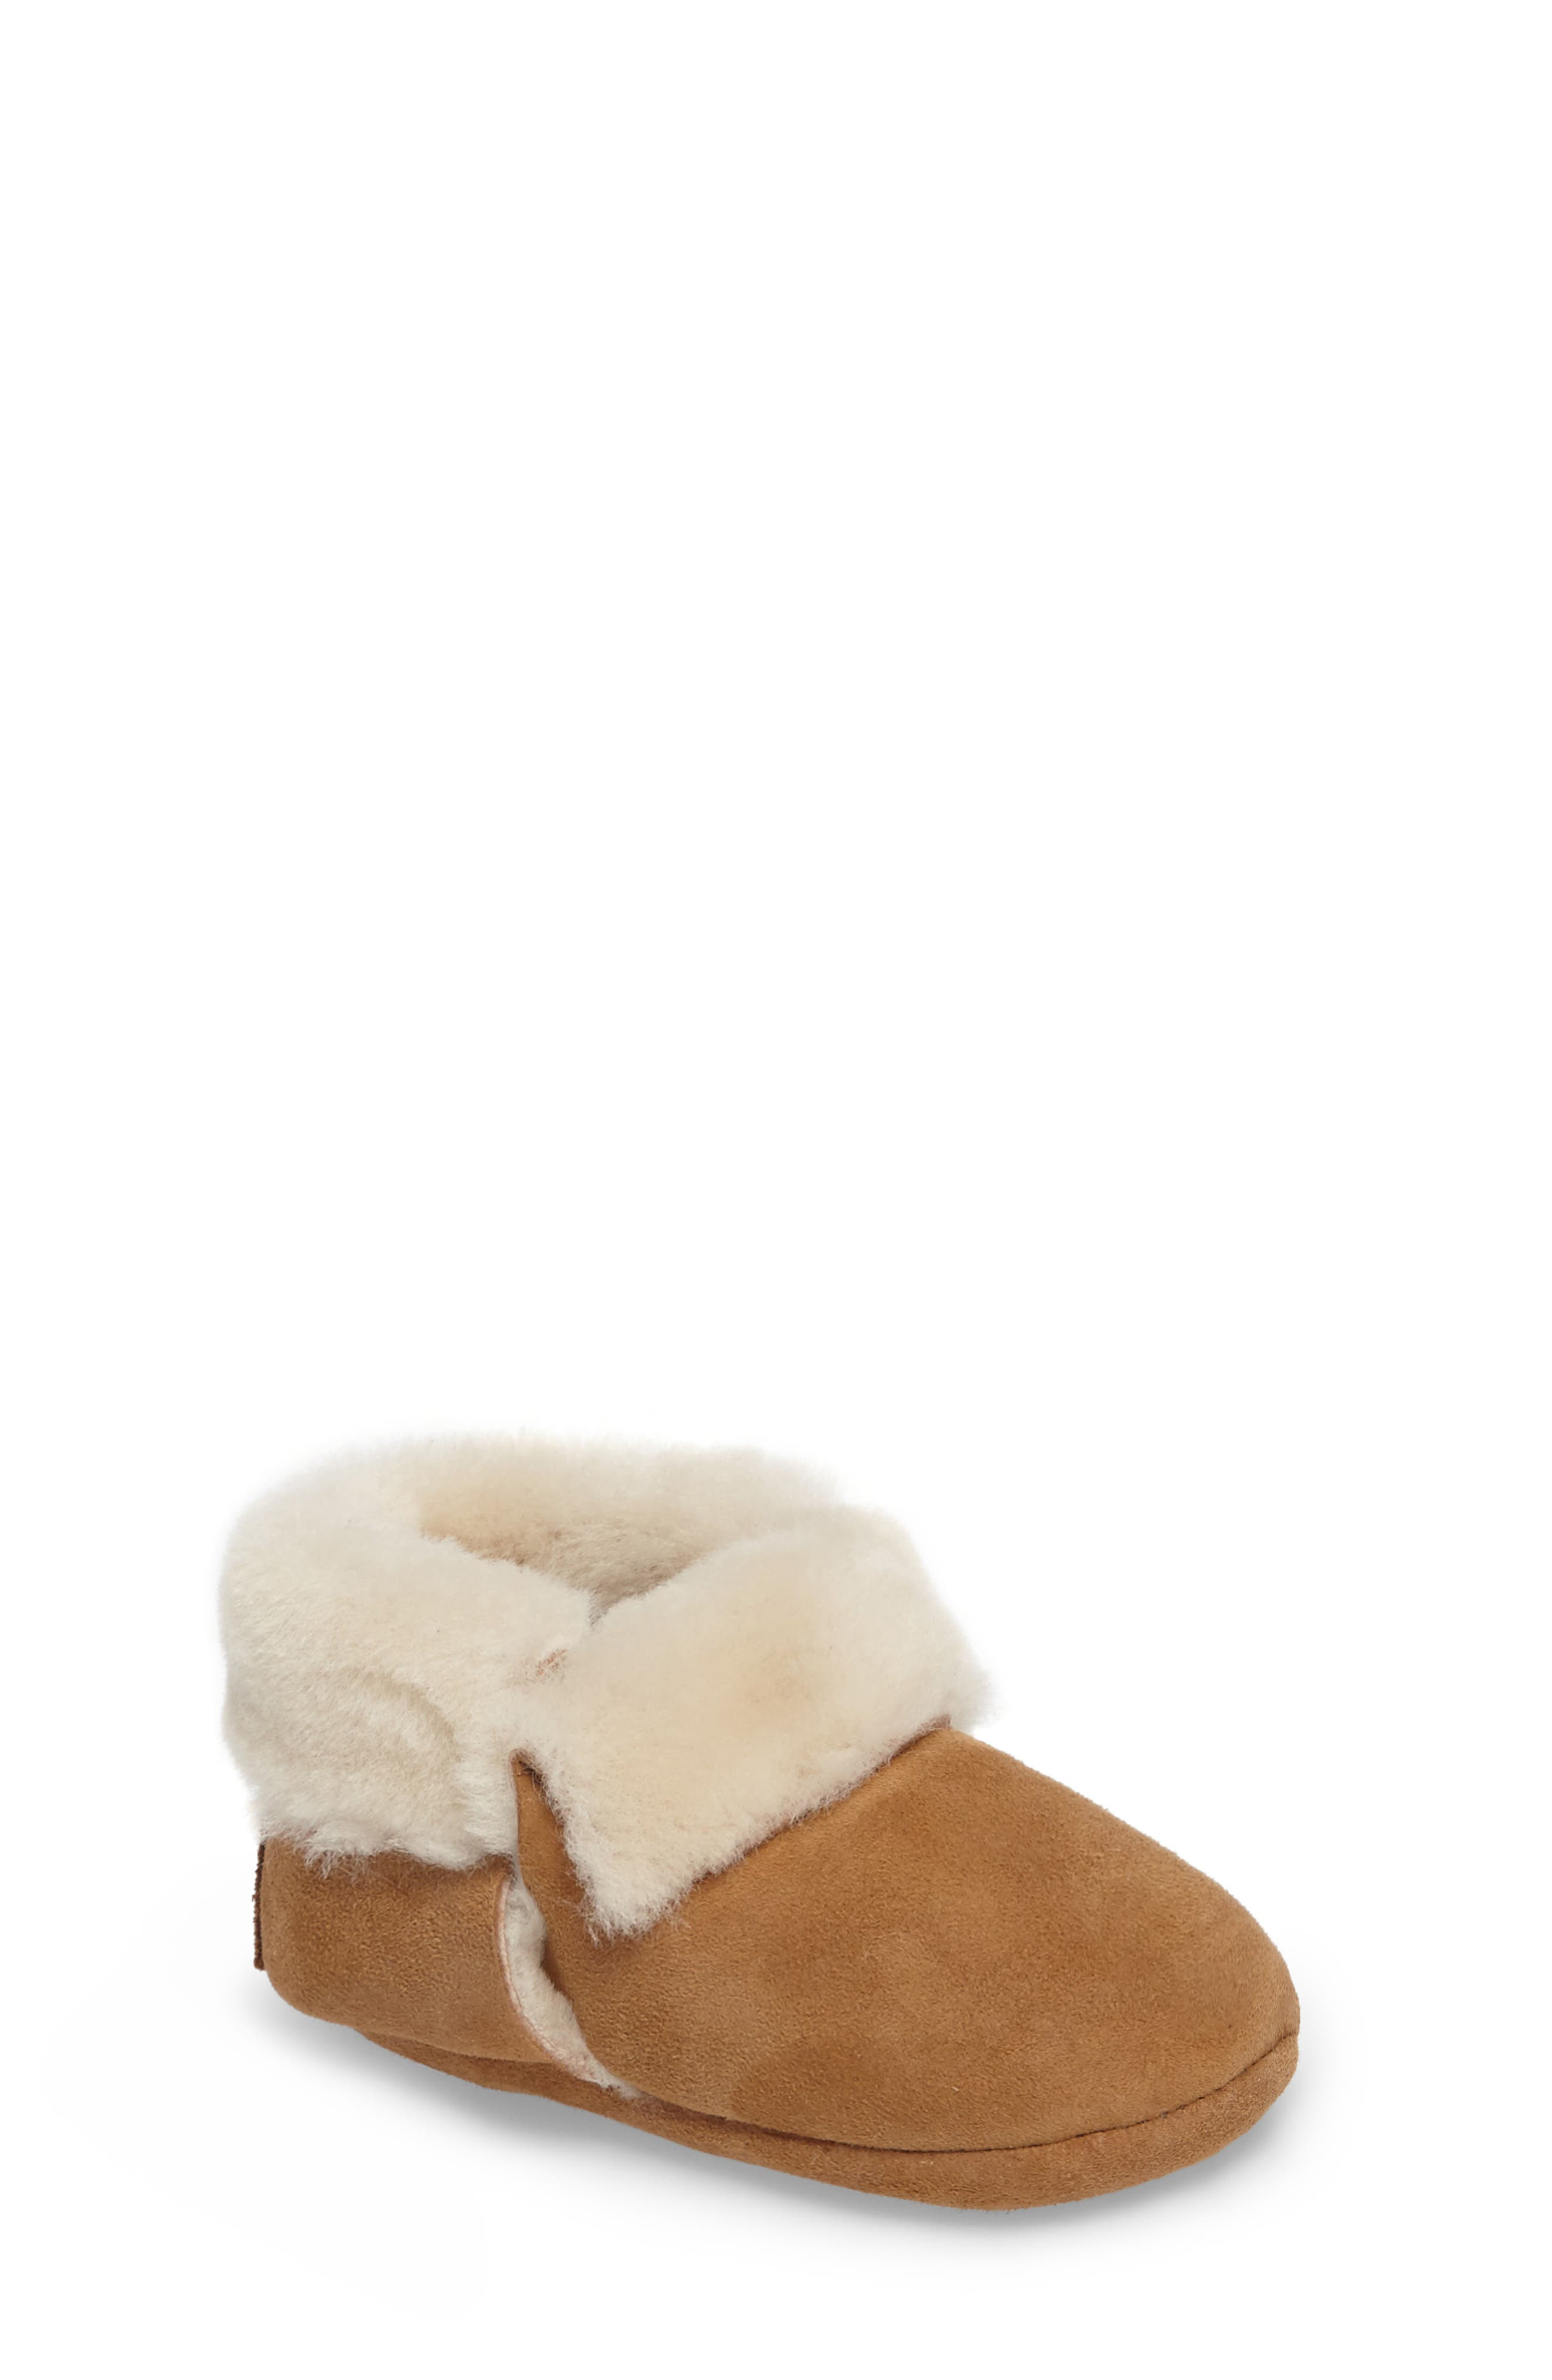 Solvi Genuine Shearling Low Cuffed Bootie,                             Main thumbnail 1, color,                             Chestnut